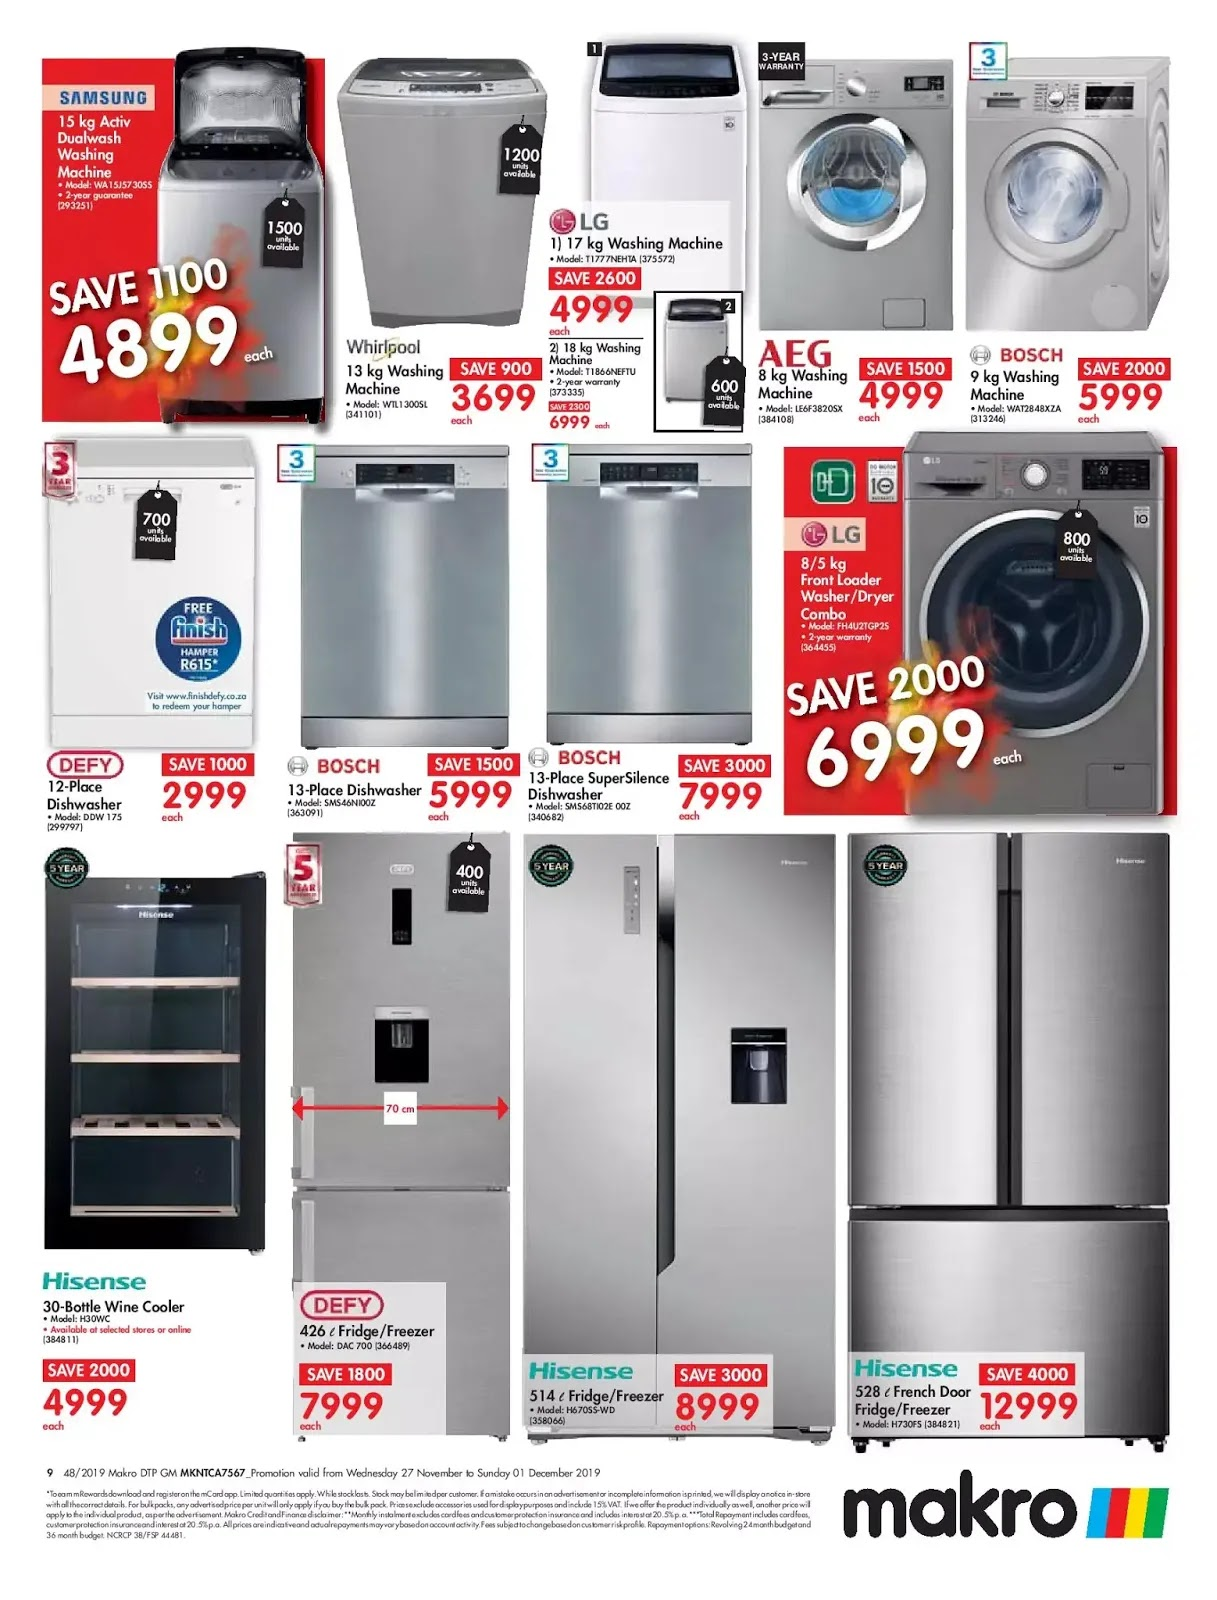 Updated 2019 Makro Black Friday 5 Deals Revealed Up To 80 Off